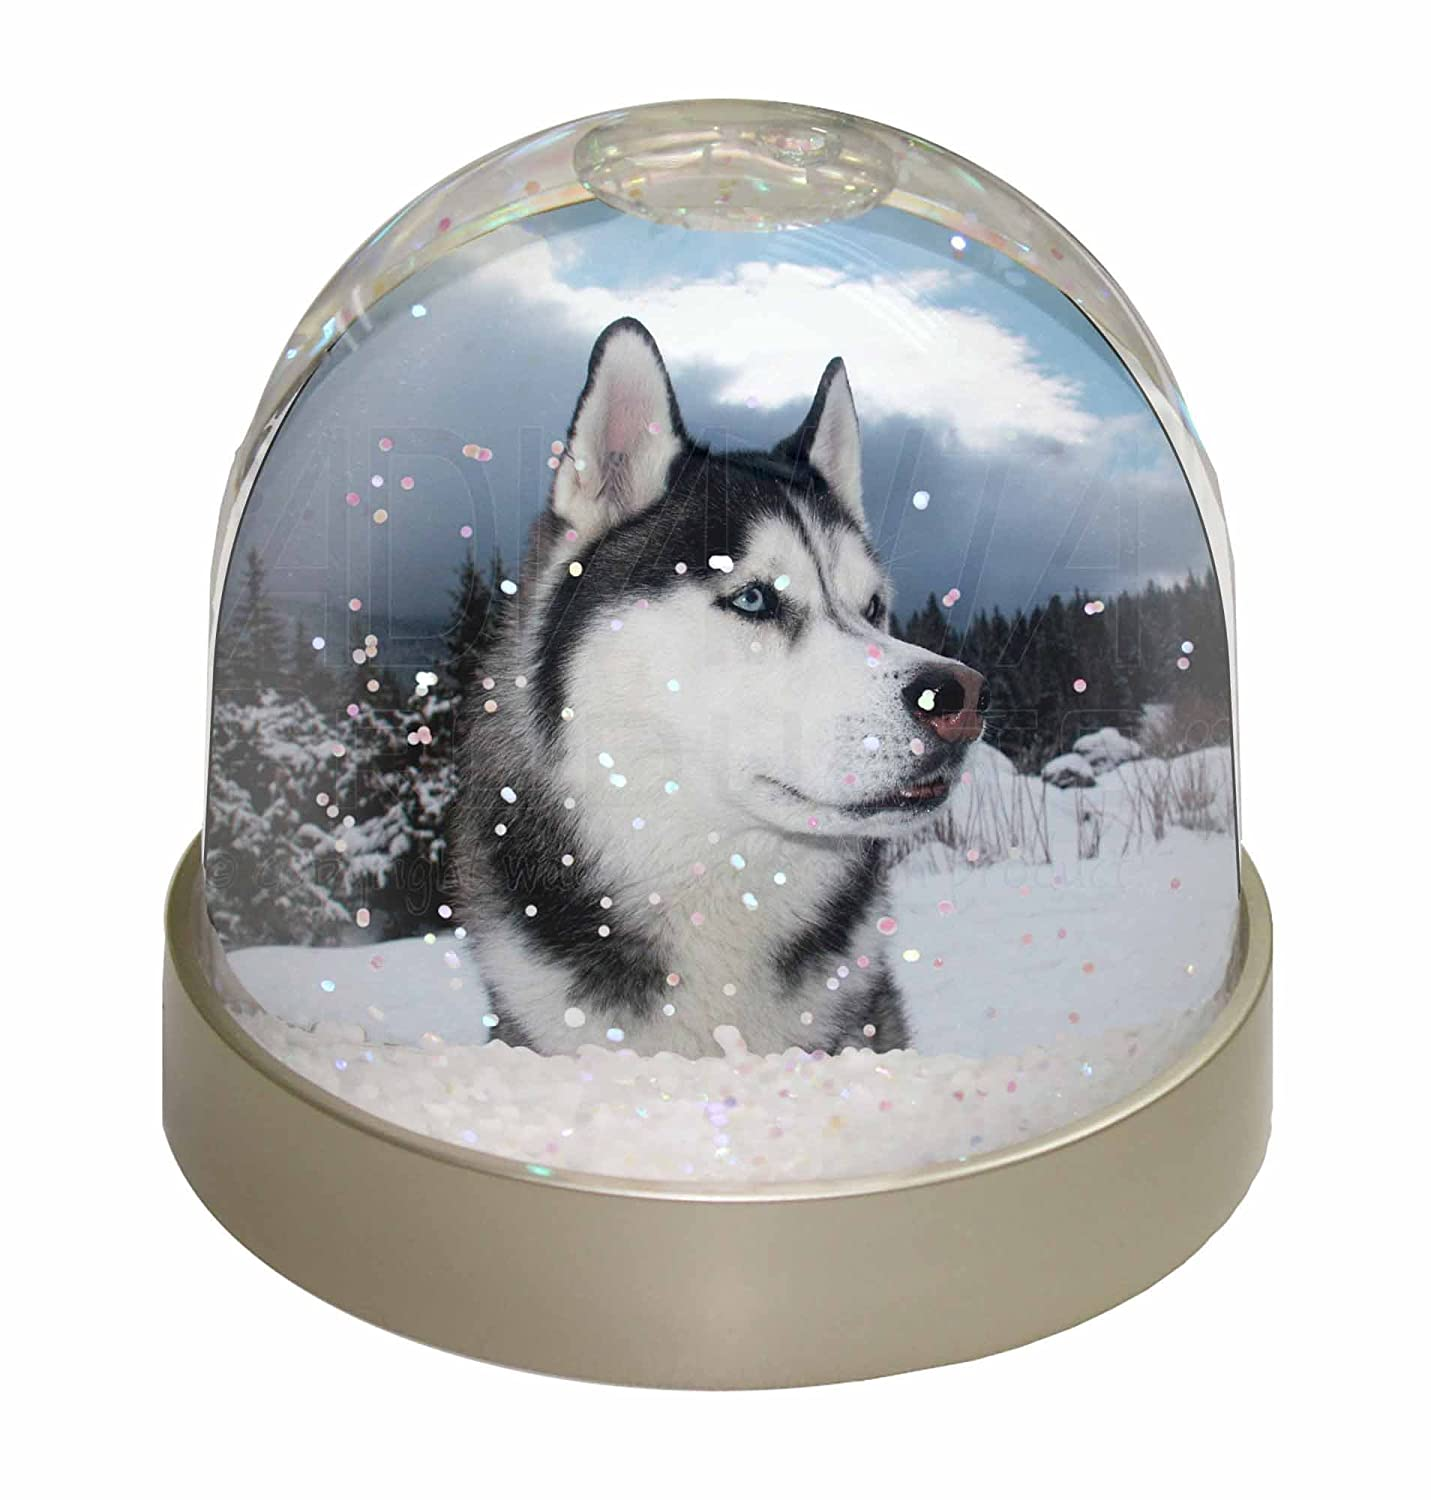 Advanta Siberian Husky Dog Snow Dome Globe Waterball Gift, Multi-Colour, 9.2 x 9.2 x 8 cm Advanta Products AD-H52GL